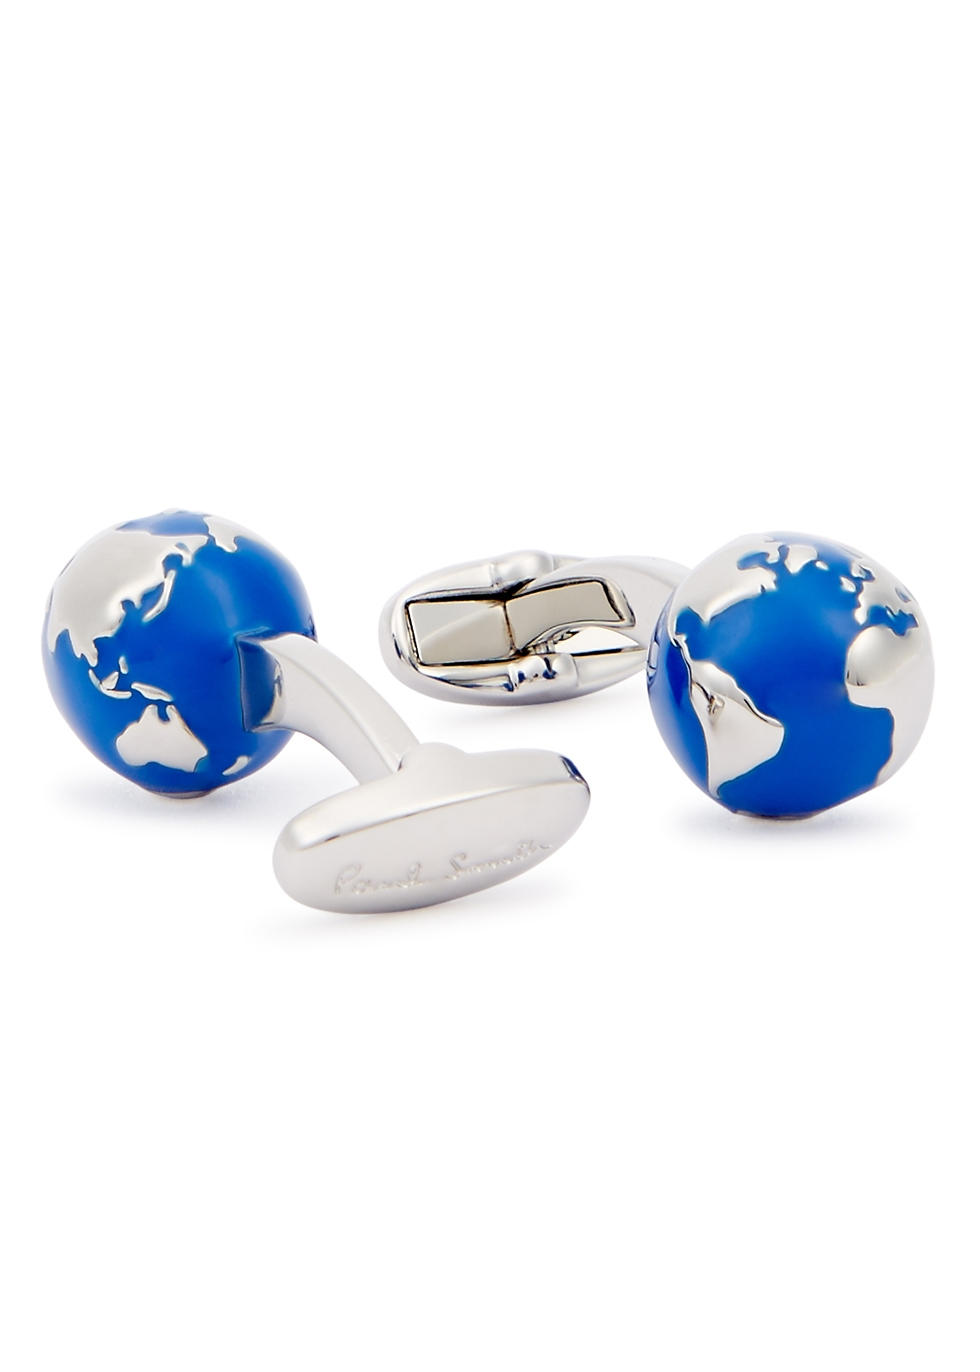 Globe silver-tone cufflinks - Paul Smith